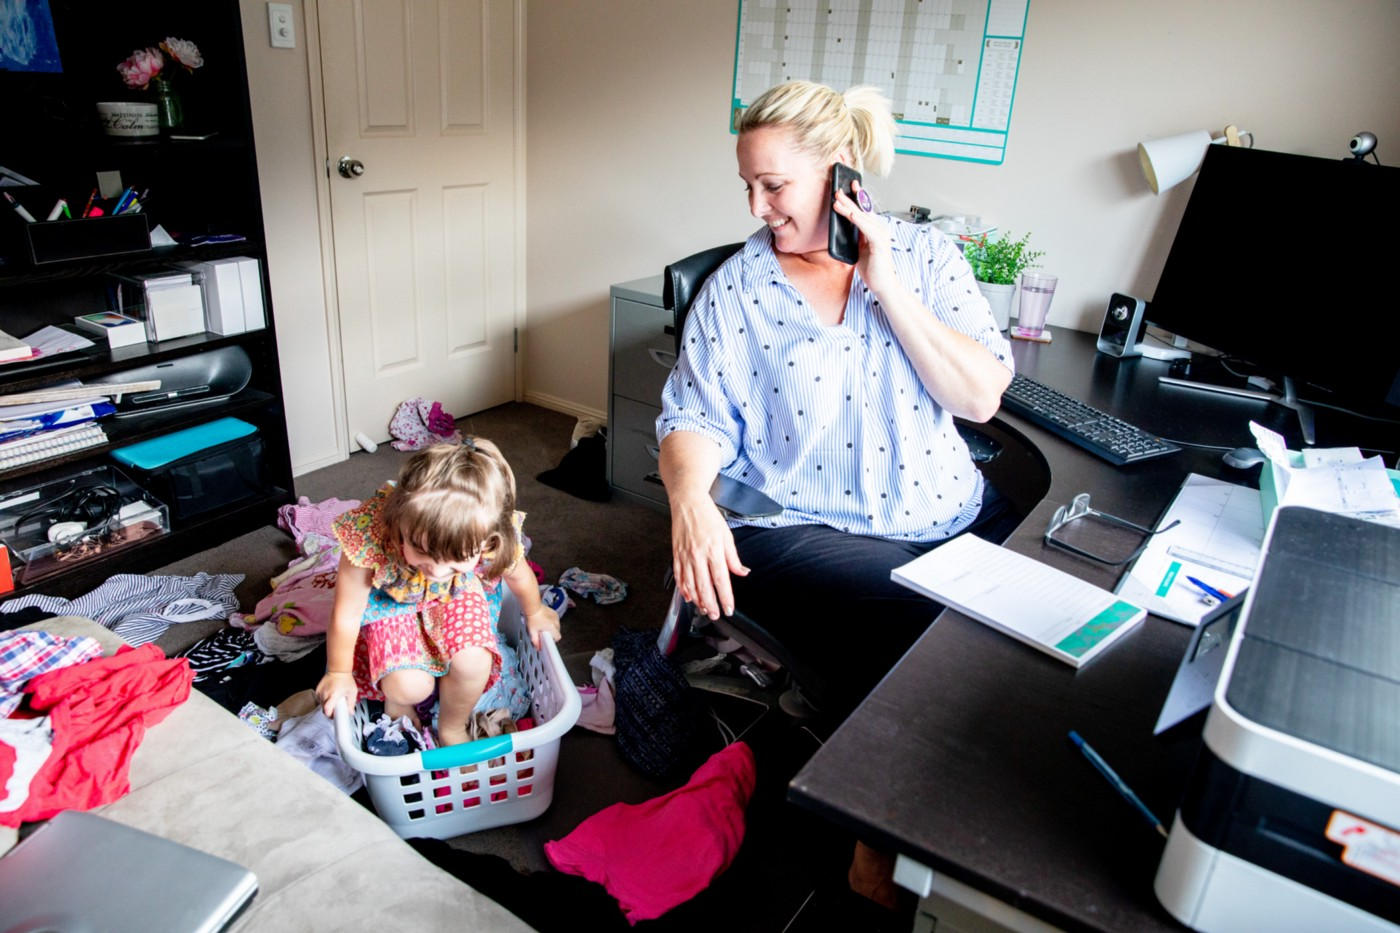 Mom works from home on the computer and phone while her daughter copies her and plays around her.